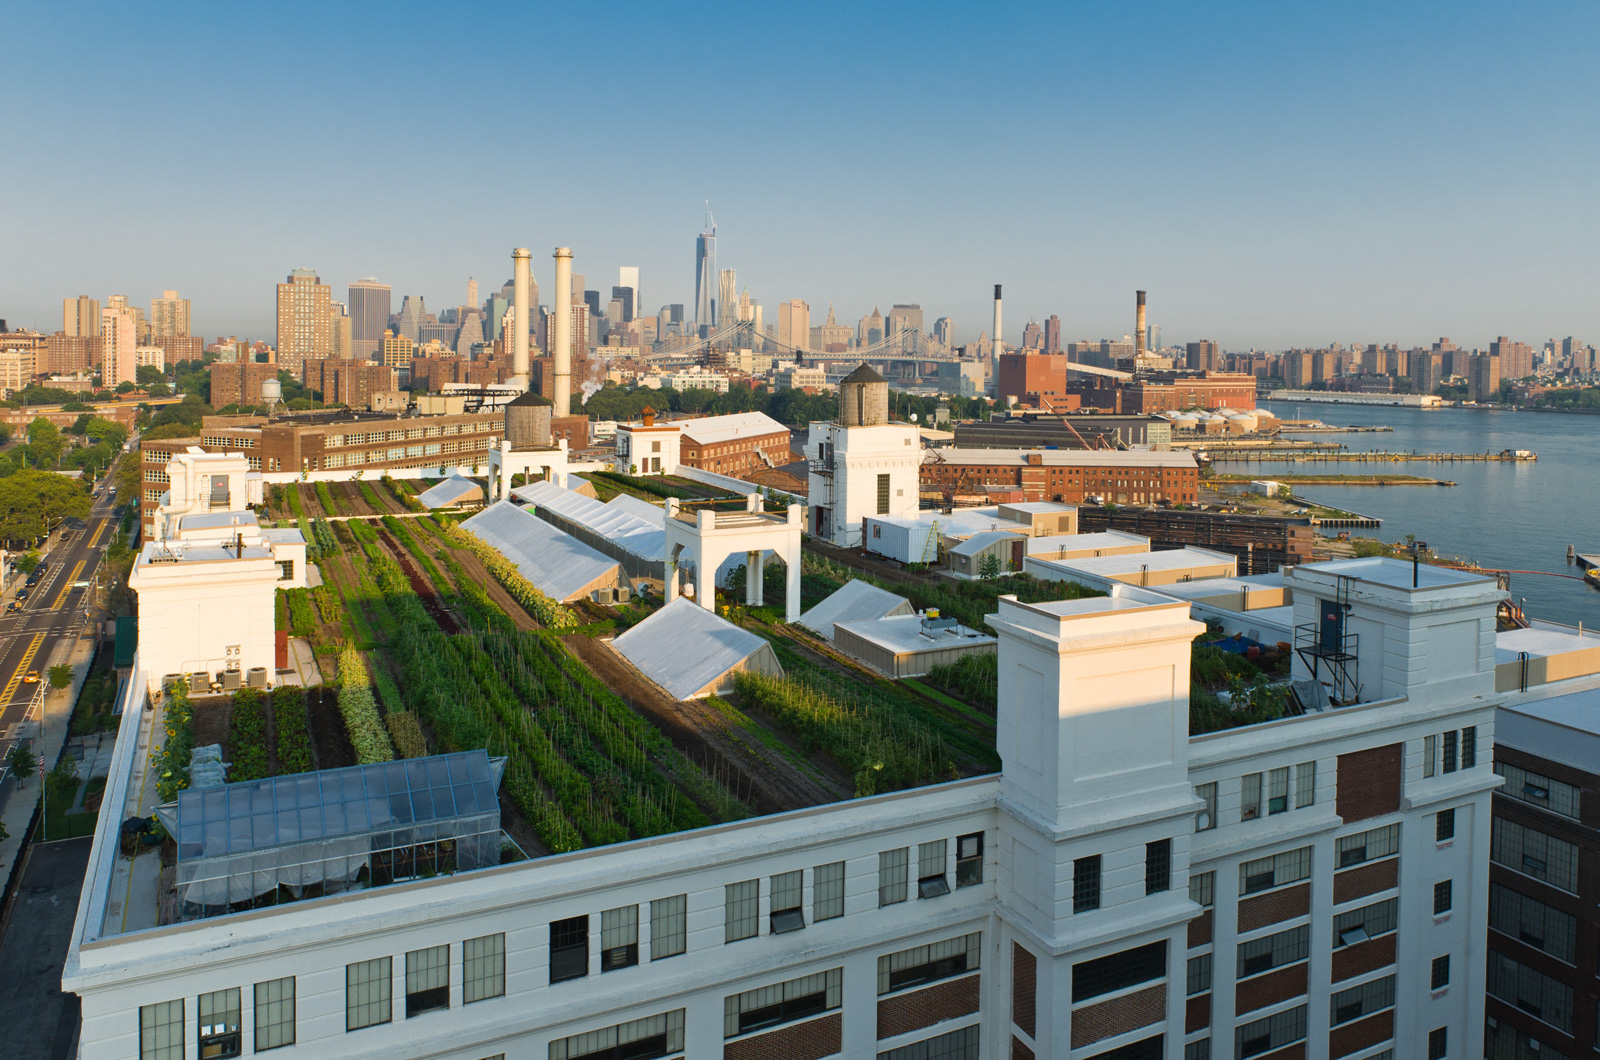 Brooklyn Grange Rooftop Farm, Brooklyn Navy Yard.